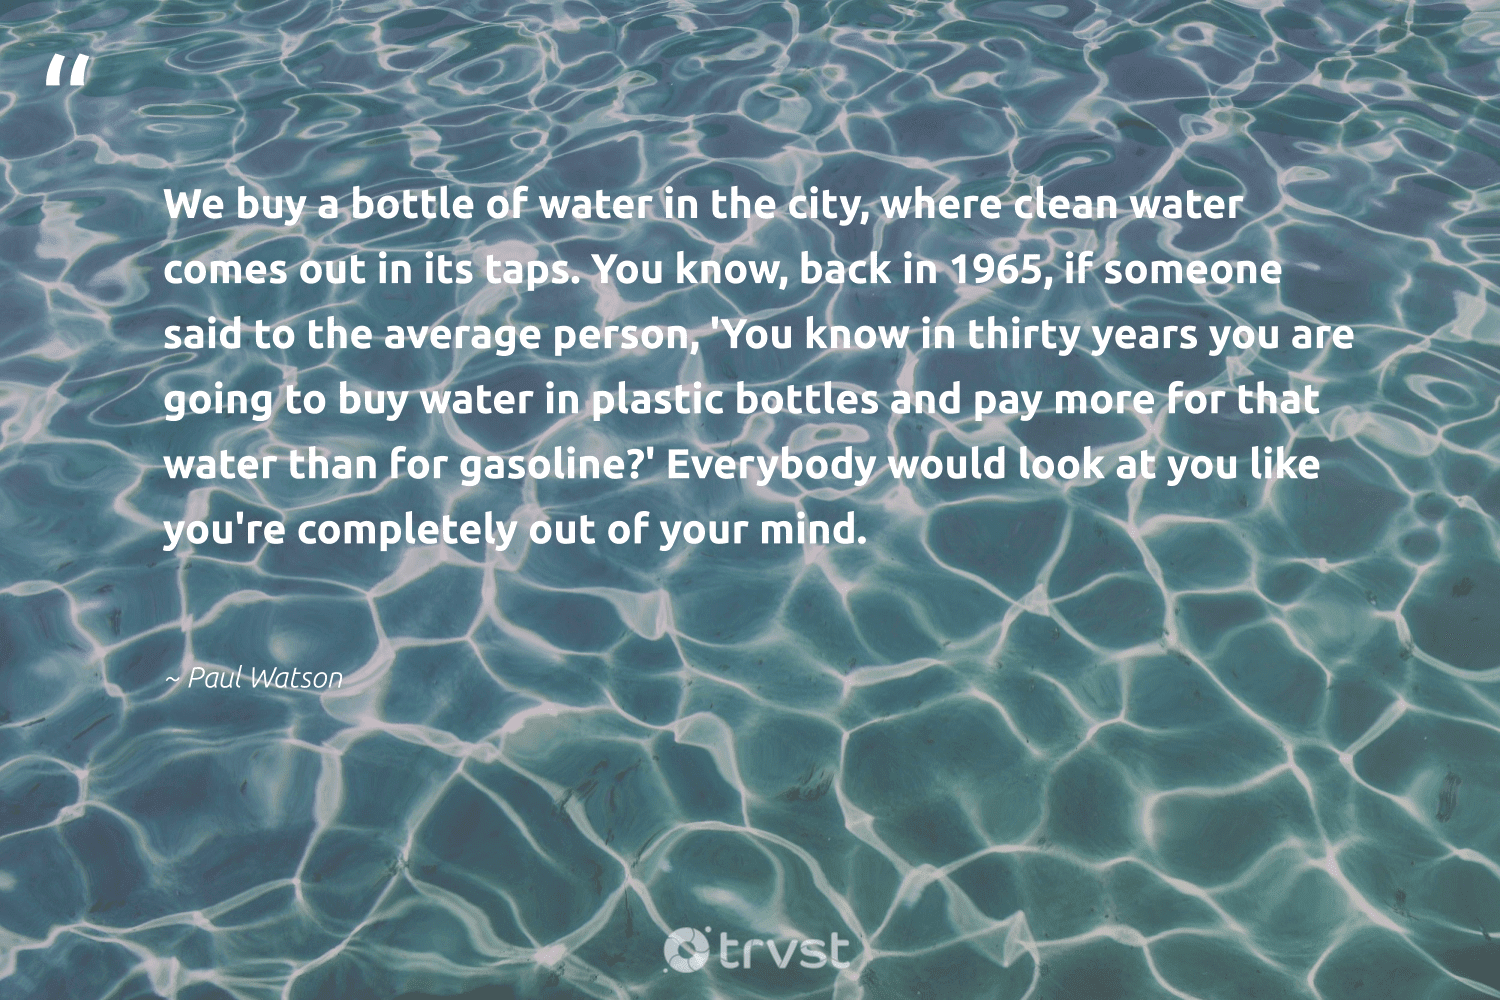 """""""We buy a bottle of water in the city, where clean water comes out in its taps. You know, back in 1965, if someone said to the average person, 'You know in thirty years you are going to buy water in plastic bottles and pay more for that water than for gasoline?' Everybody would look at you like you're completely out of your mind.""""  - Paul Watson #trvst #quotes #plasticwaste #plastic #water #saynotoplastic #wastefree #ecoactivism #changetheworld #plasticfree #dogood #thinkgreen"""